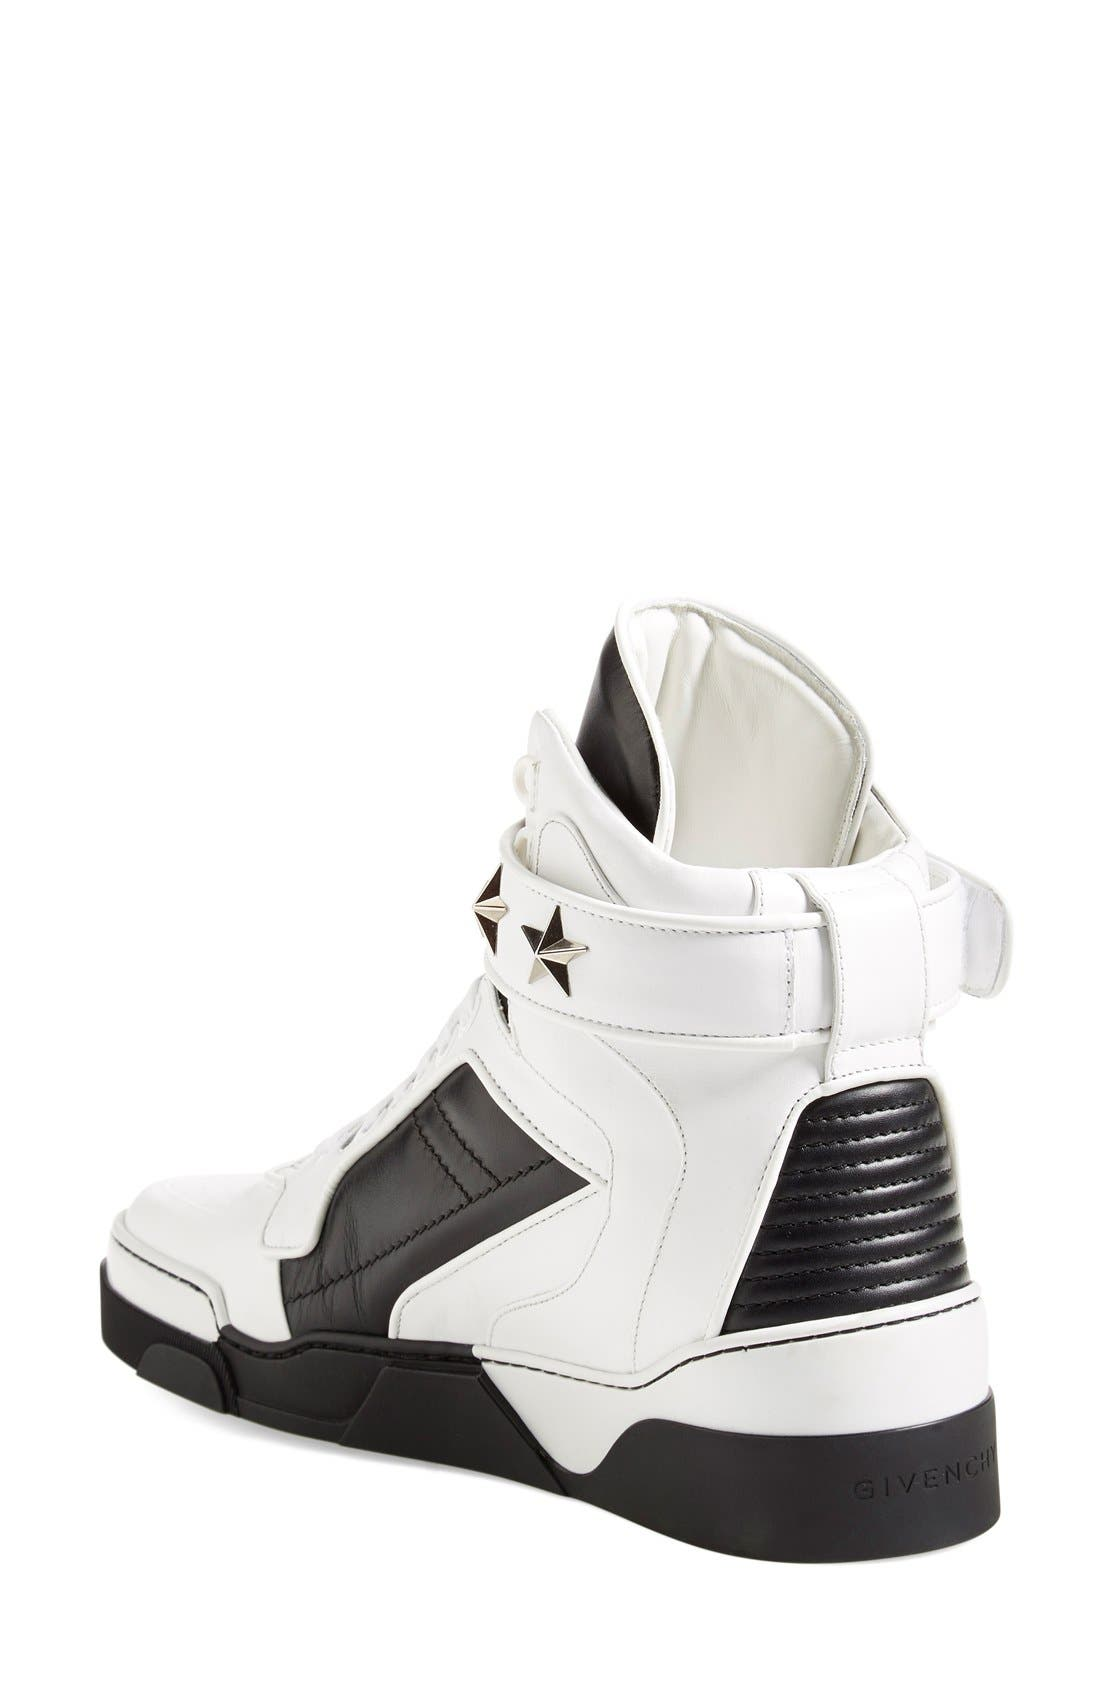 'Tyson' High Top Sneaker,                             Alternate thumbnail 8, color,